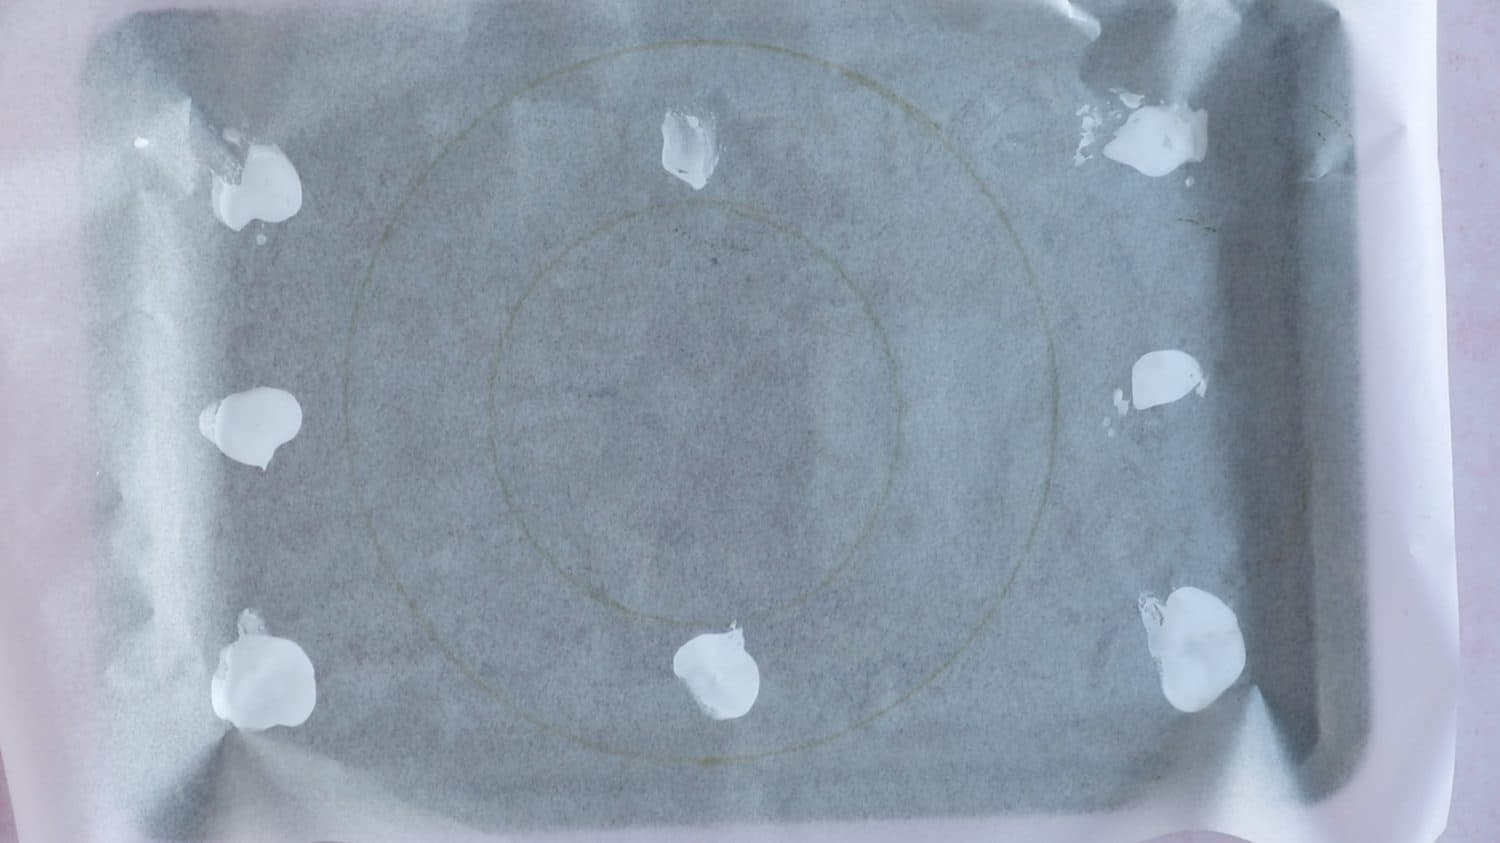 A tracing of a wreath shape on baking paper.